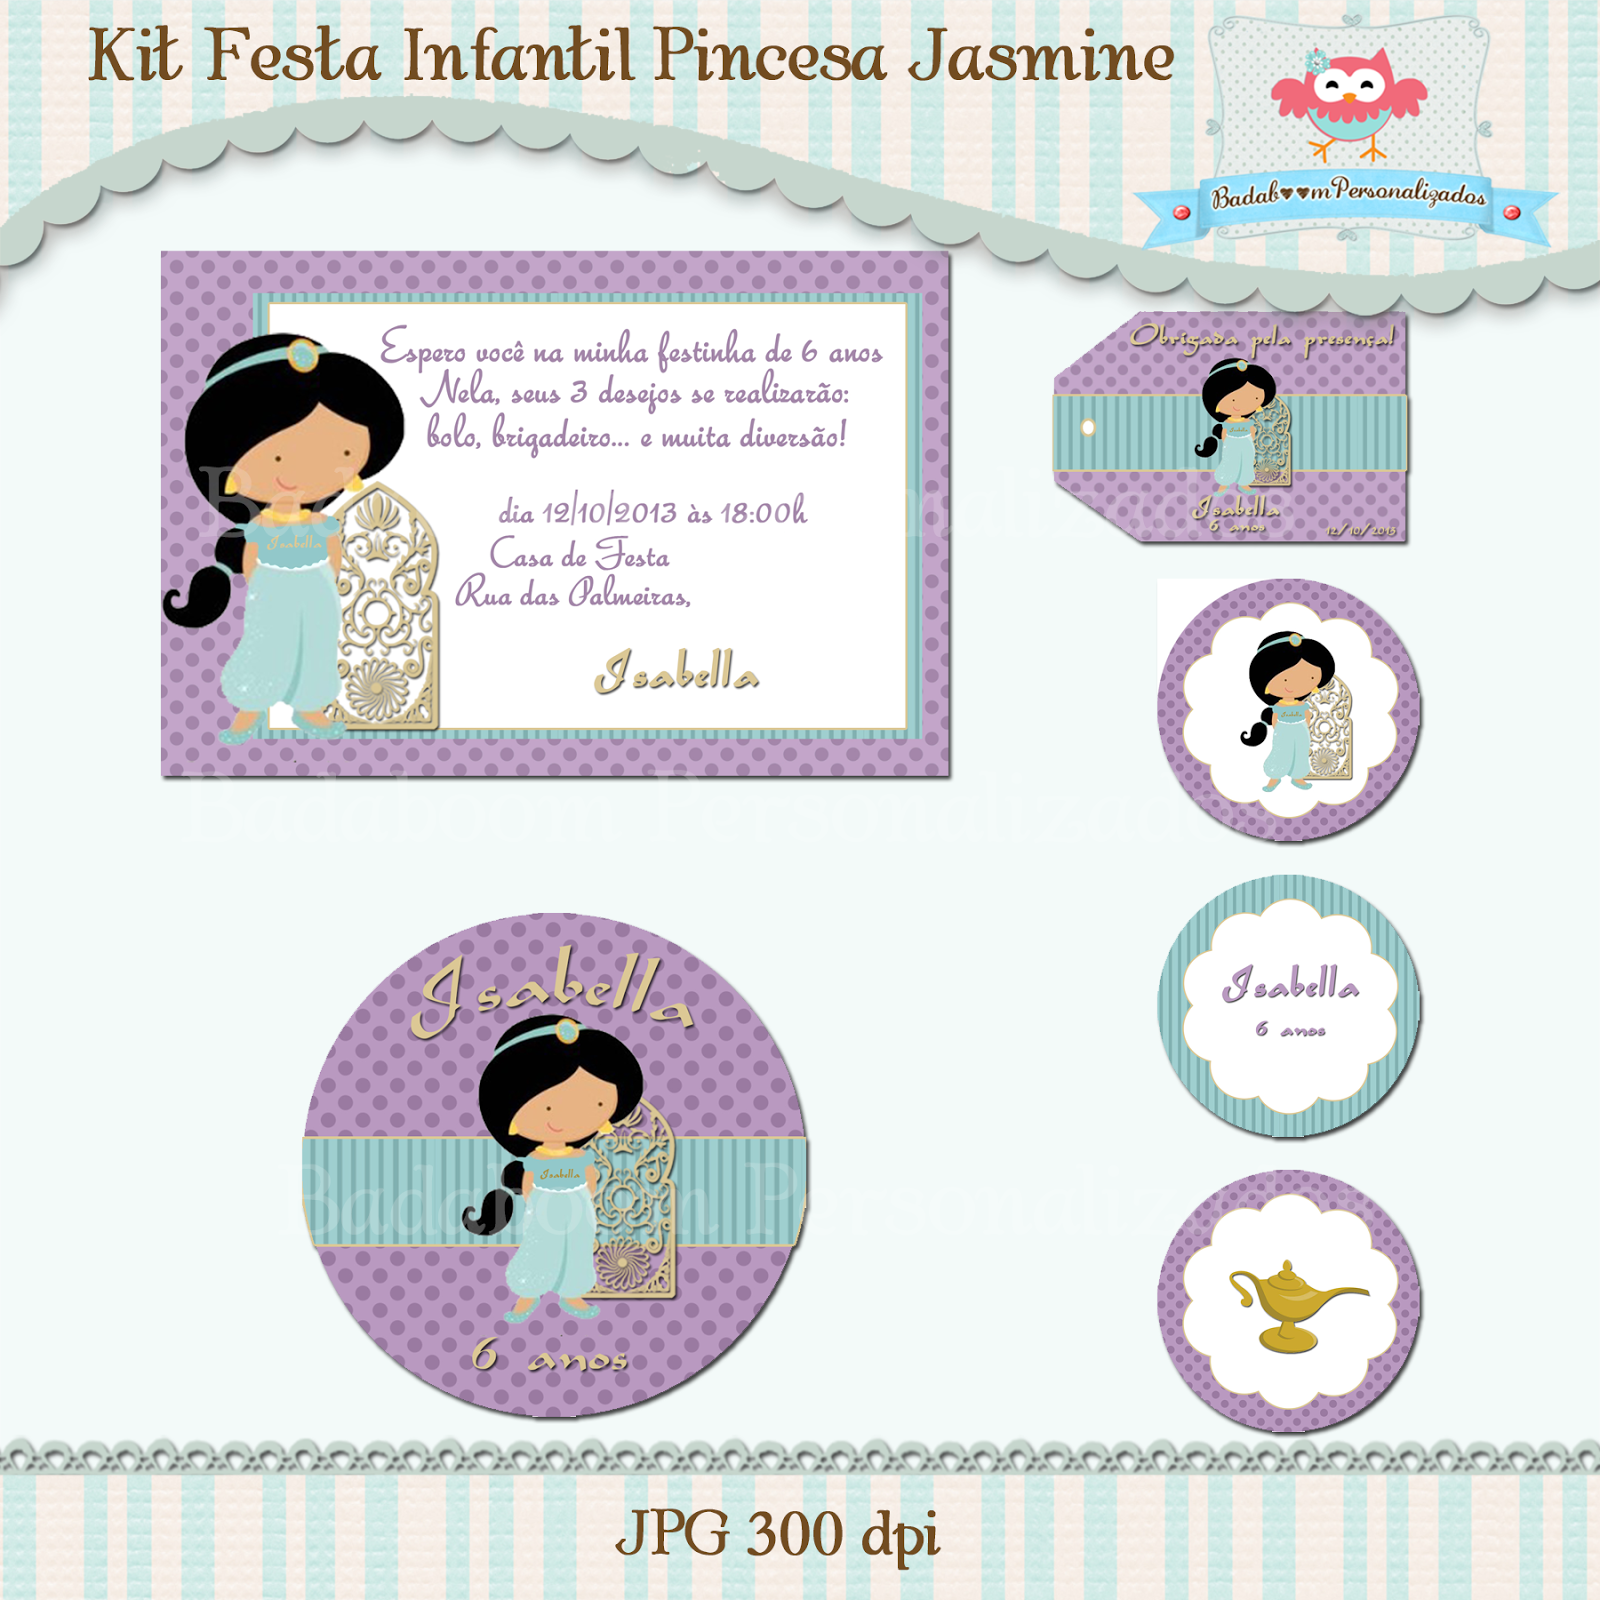 kit digital, artes digitais, festa infantil, personalizados, jasmine, princesas, convite, topper, latinha, min to be, tubete, tag, rotulos